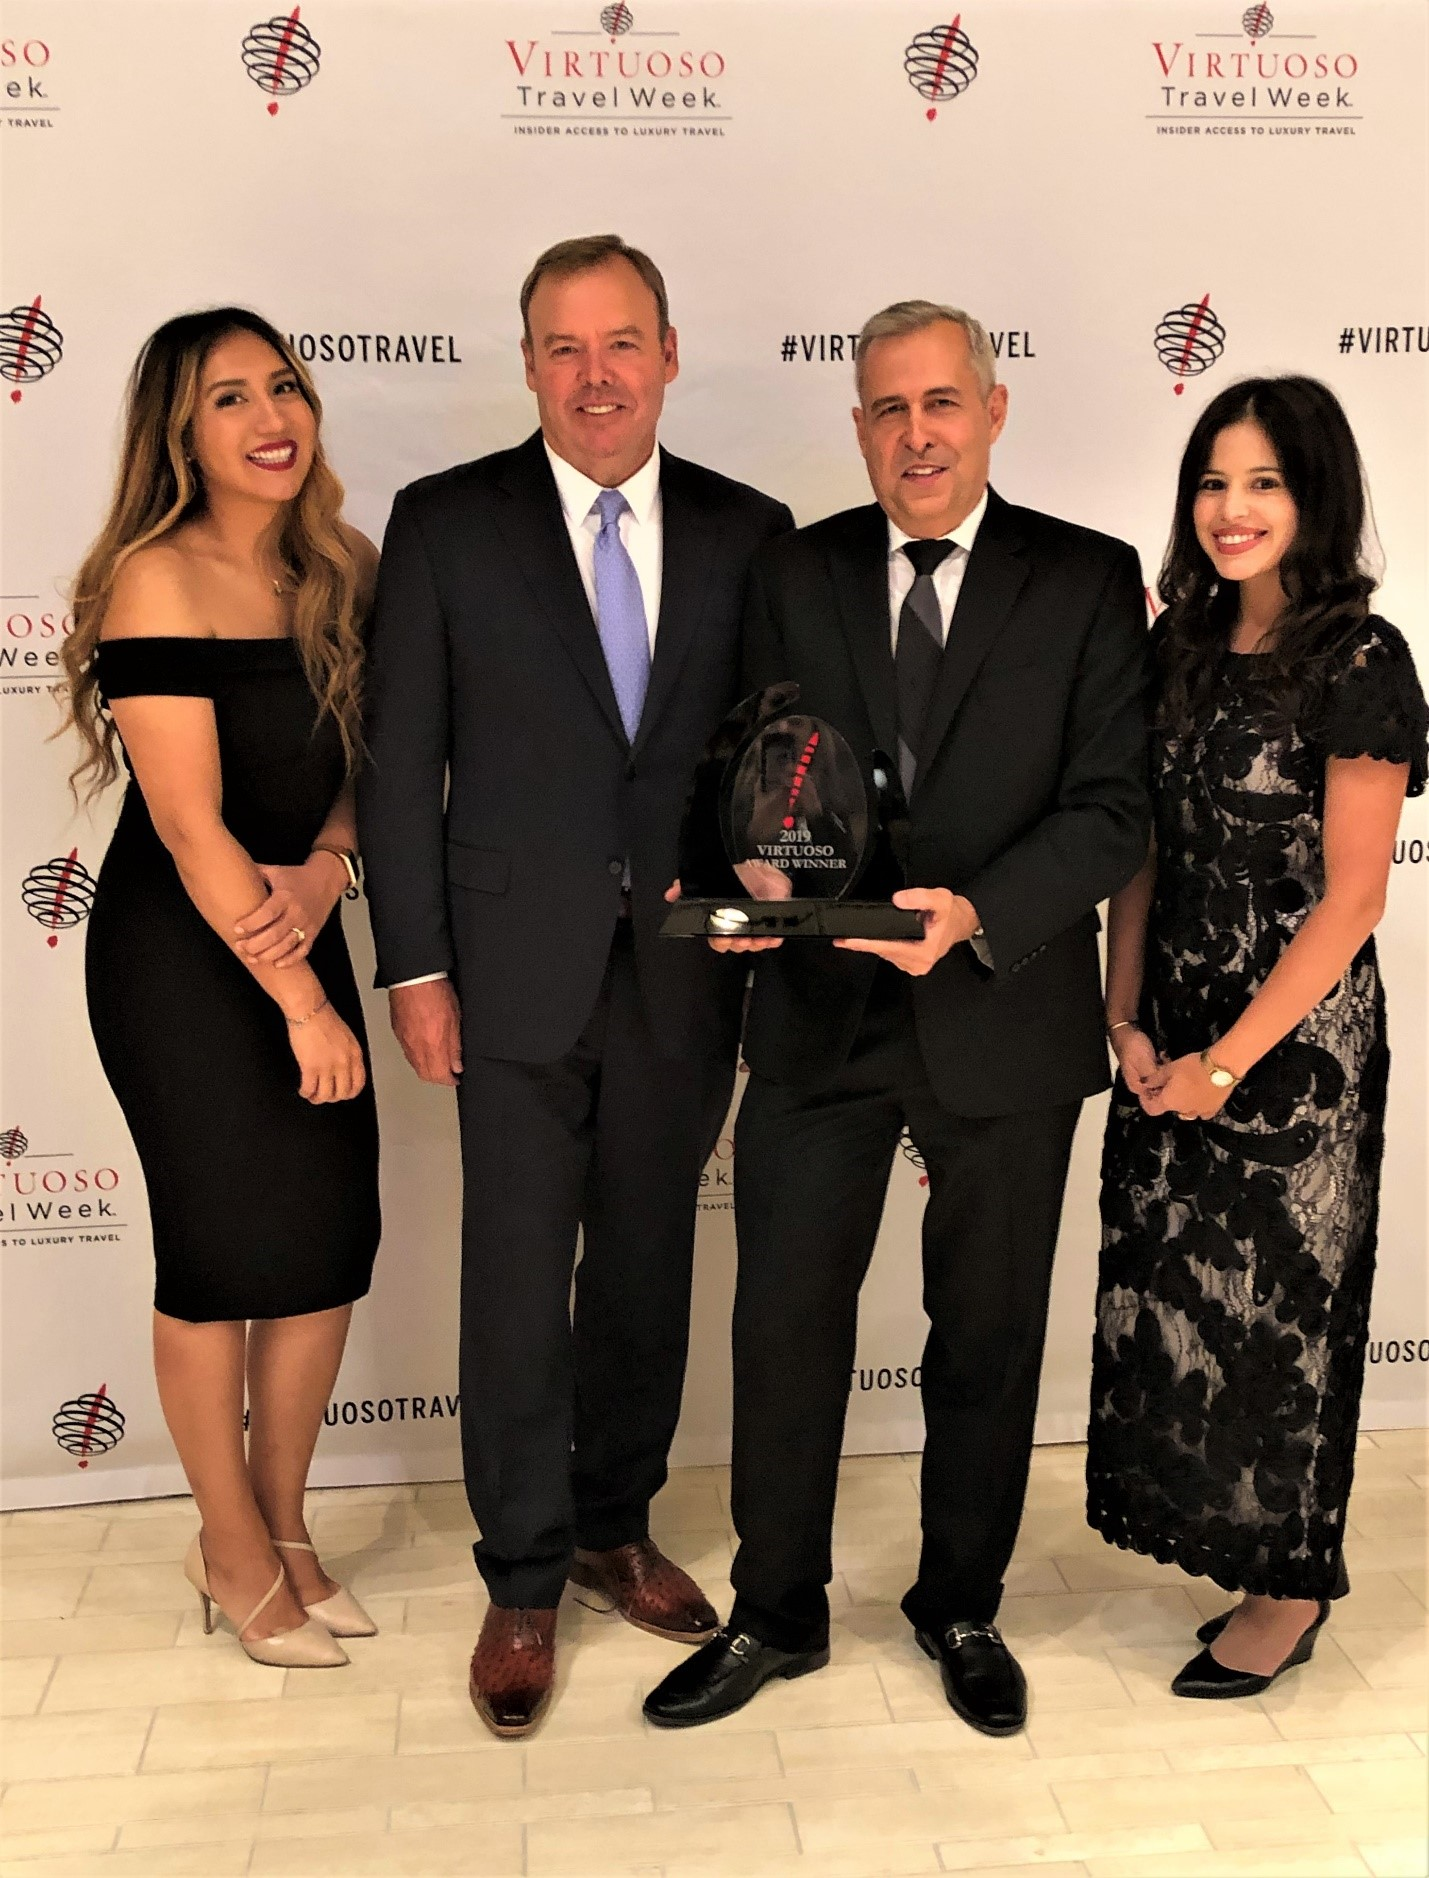 Elizabeth Yanes, manager, national accounts; Gary Murphy, co-owner and senior vice president, sales; Alex Pinelo, vice president, sales; Jenisse Melo, business development manager, Southern California - Global Luxury Travel Network Honors AmaWaterways at 31st Annual Virtuoso Travel Week